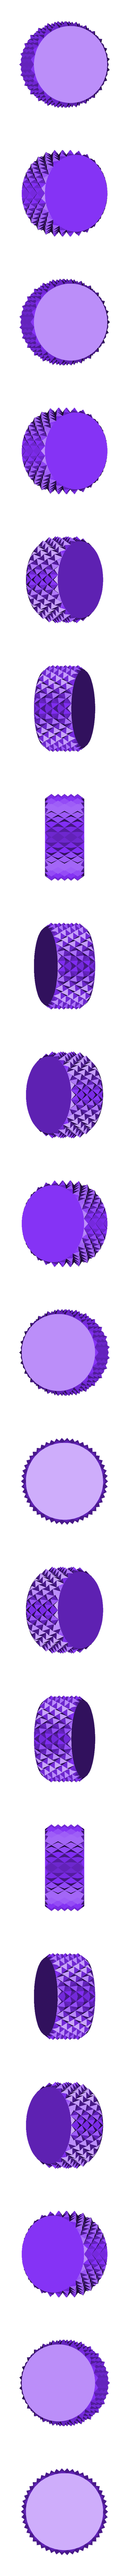 kv2_Example_01.stl Download free SCAD file Knurled Surface Library v2 • 3D printing design, Wachet